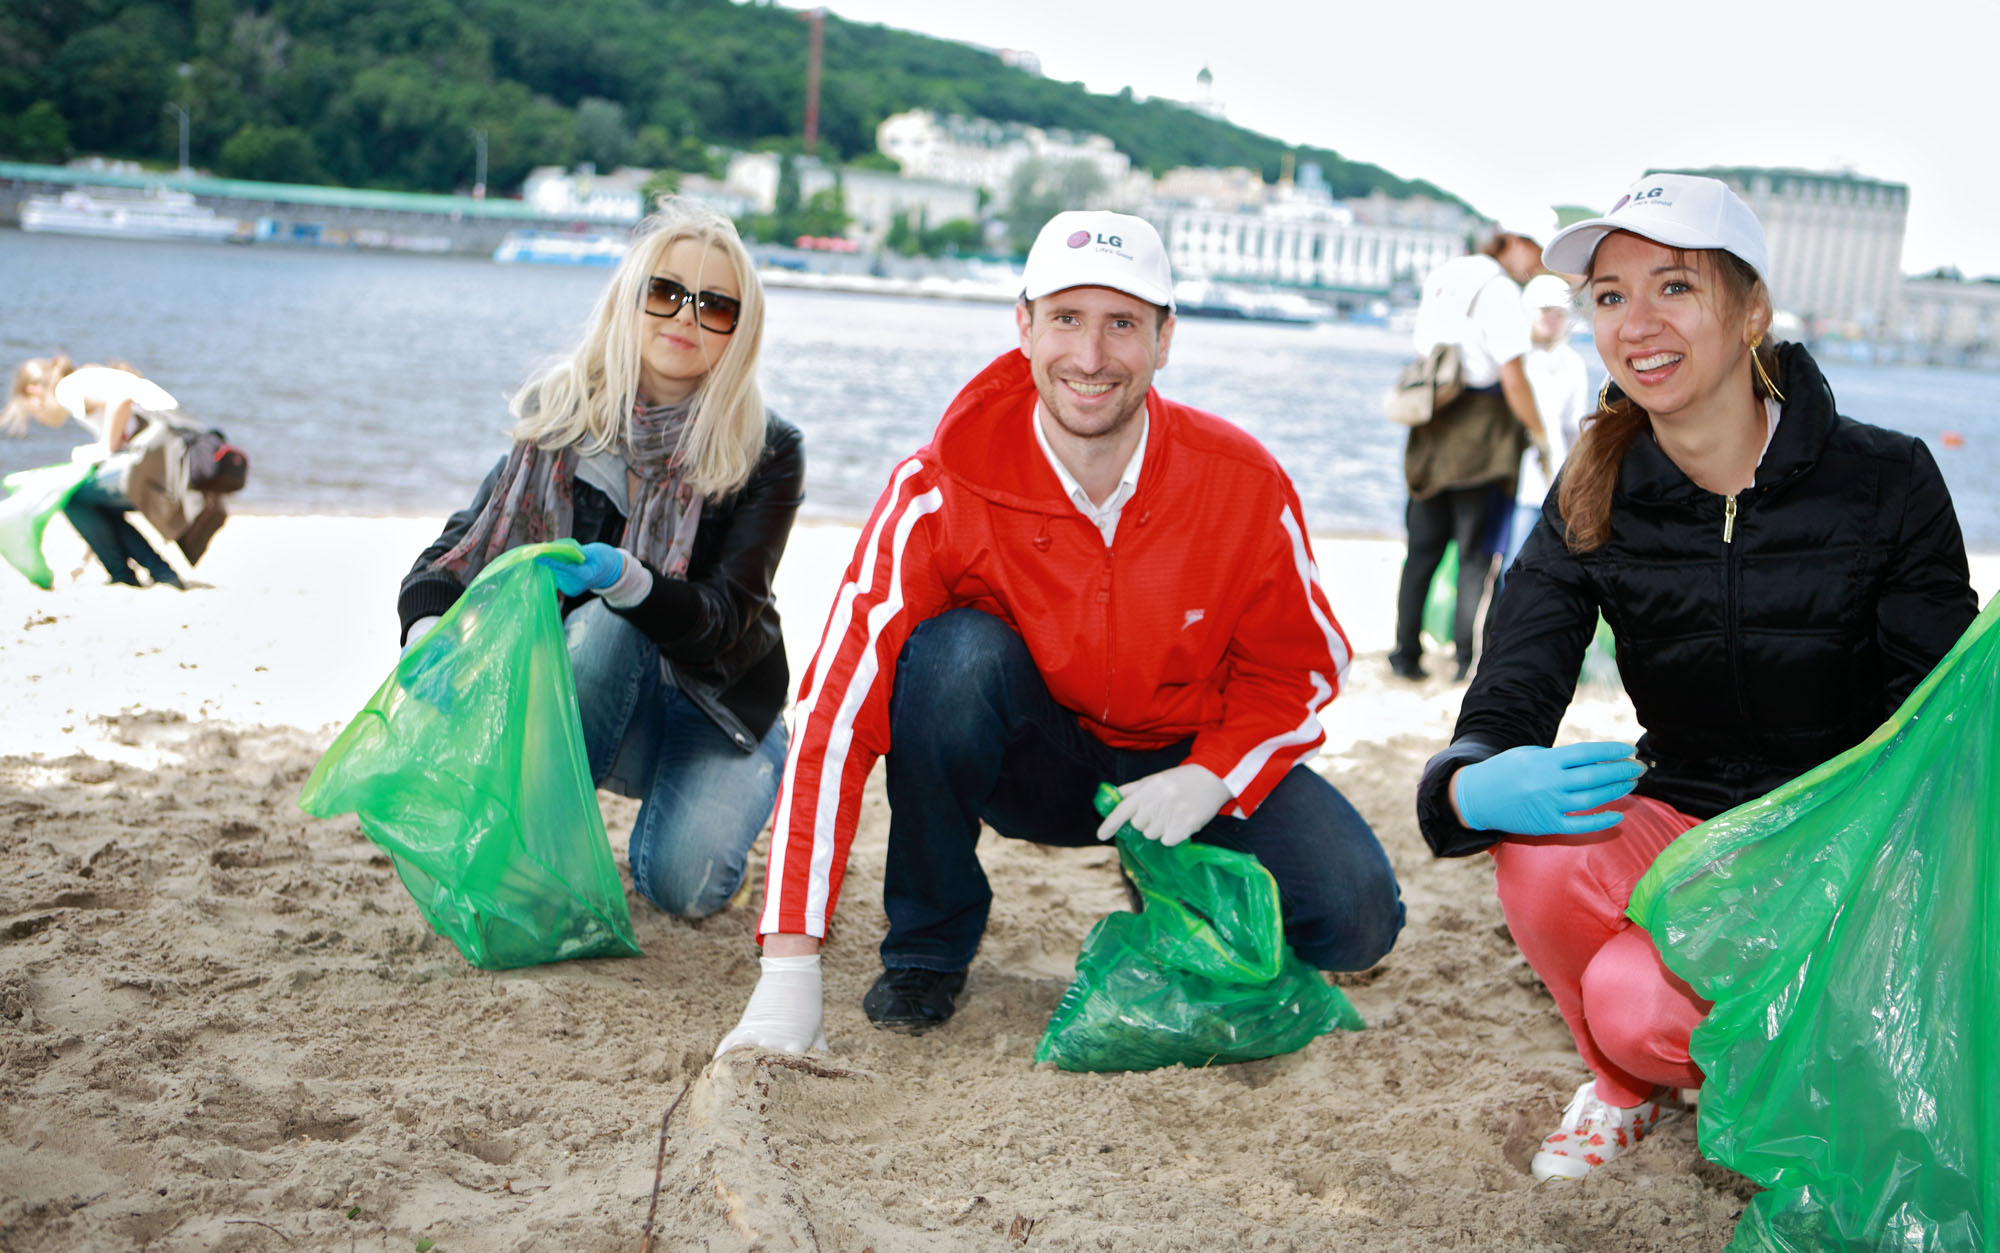 LG Electronics employees clean up a beach in the Ukraine for World Environment Day.